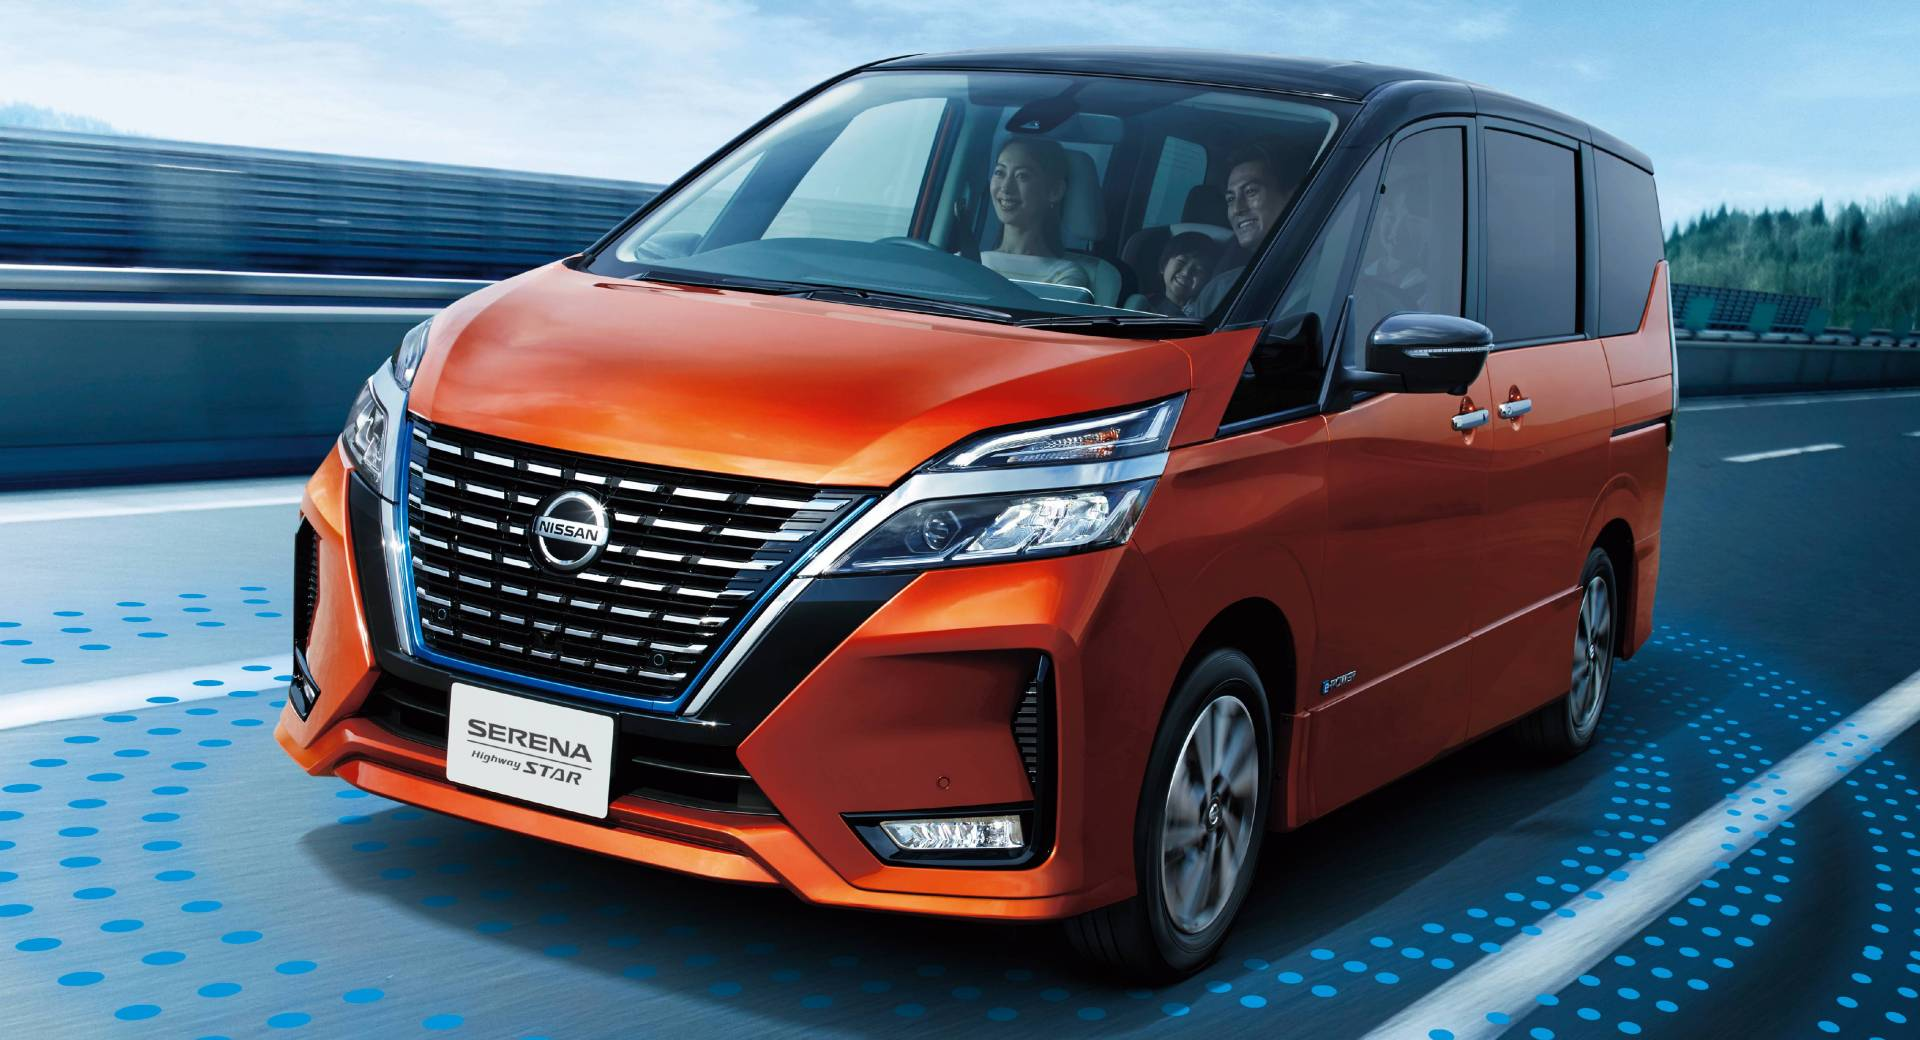 Japan's Facelifted Nissan Serena Becomes Smarter, Safer ...